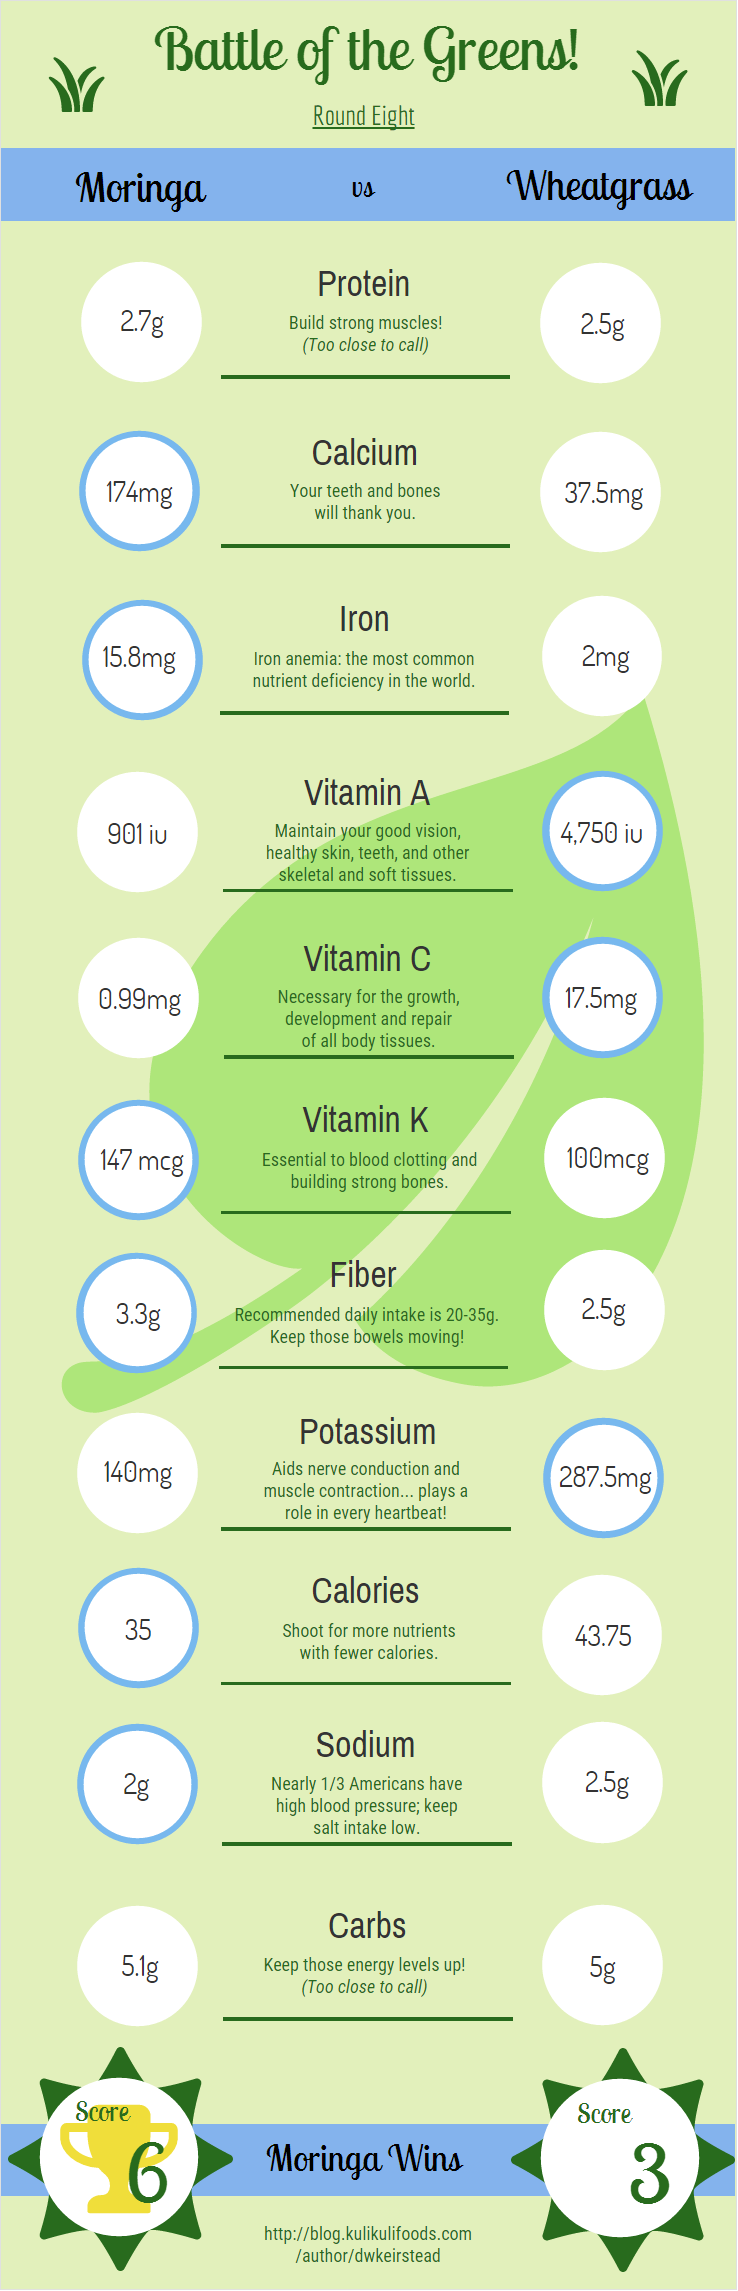 Moringa vs Wheatgrass Figure 1